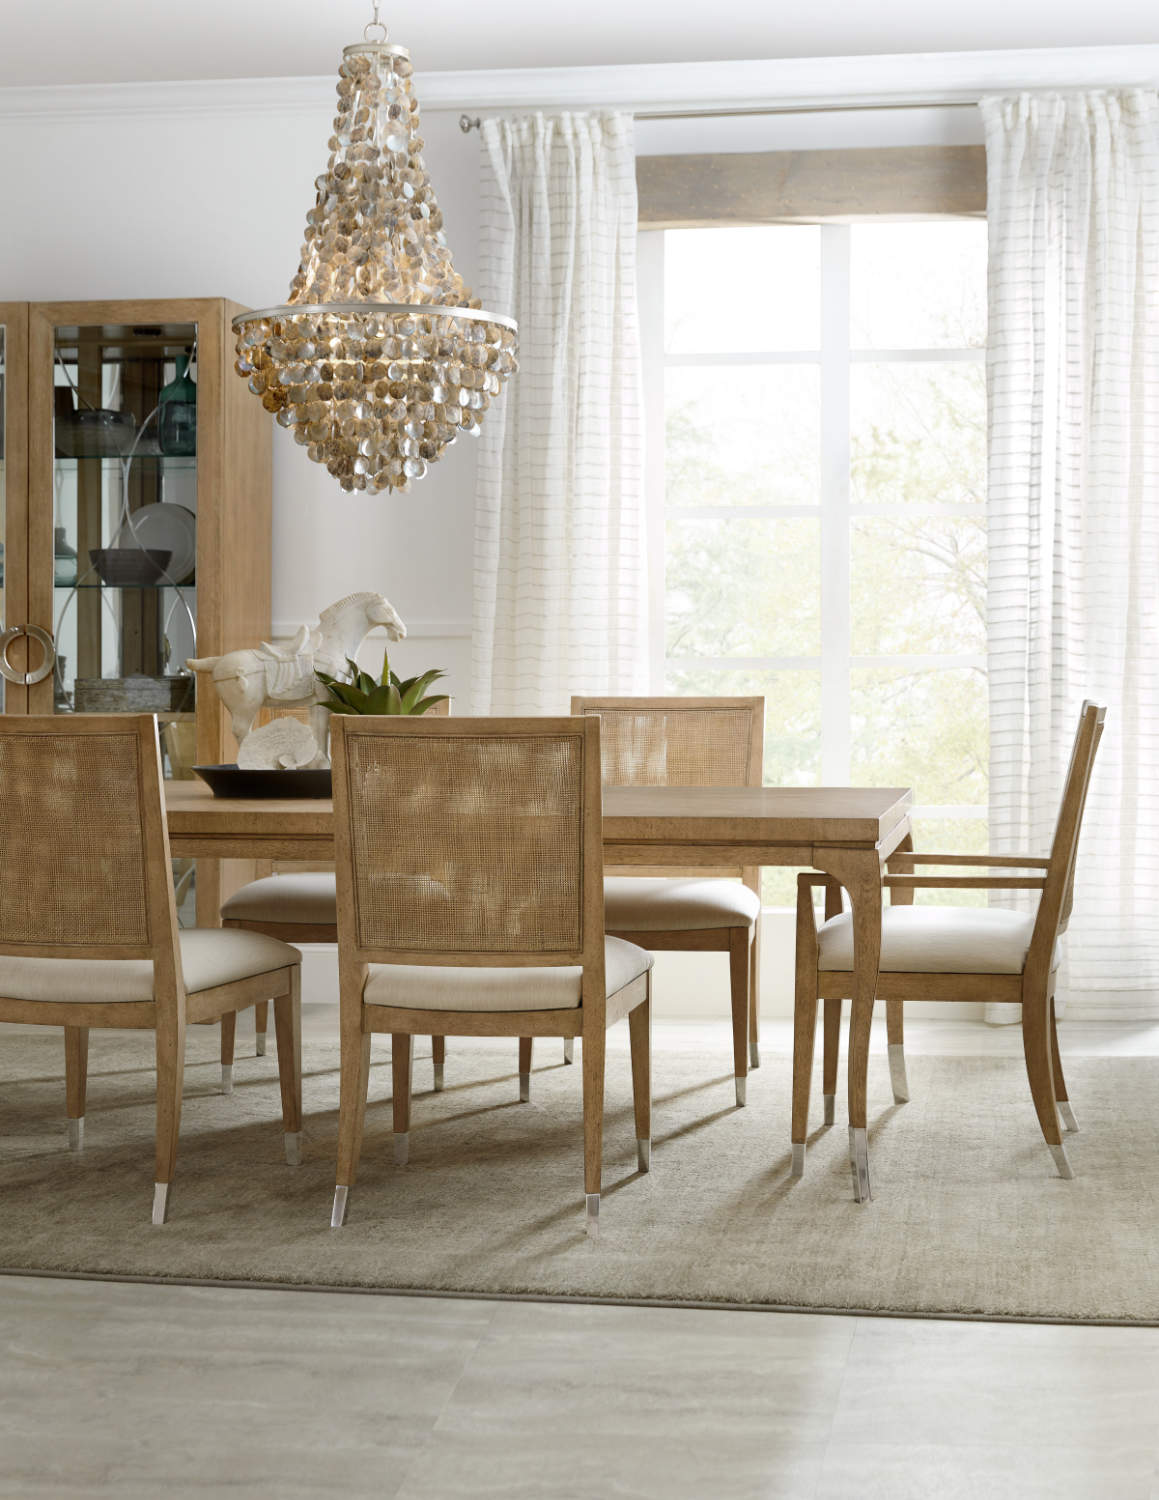 Hooker Furniture Novella Collection Dining Room.jpg